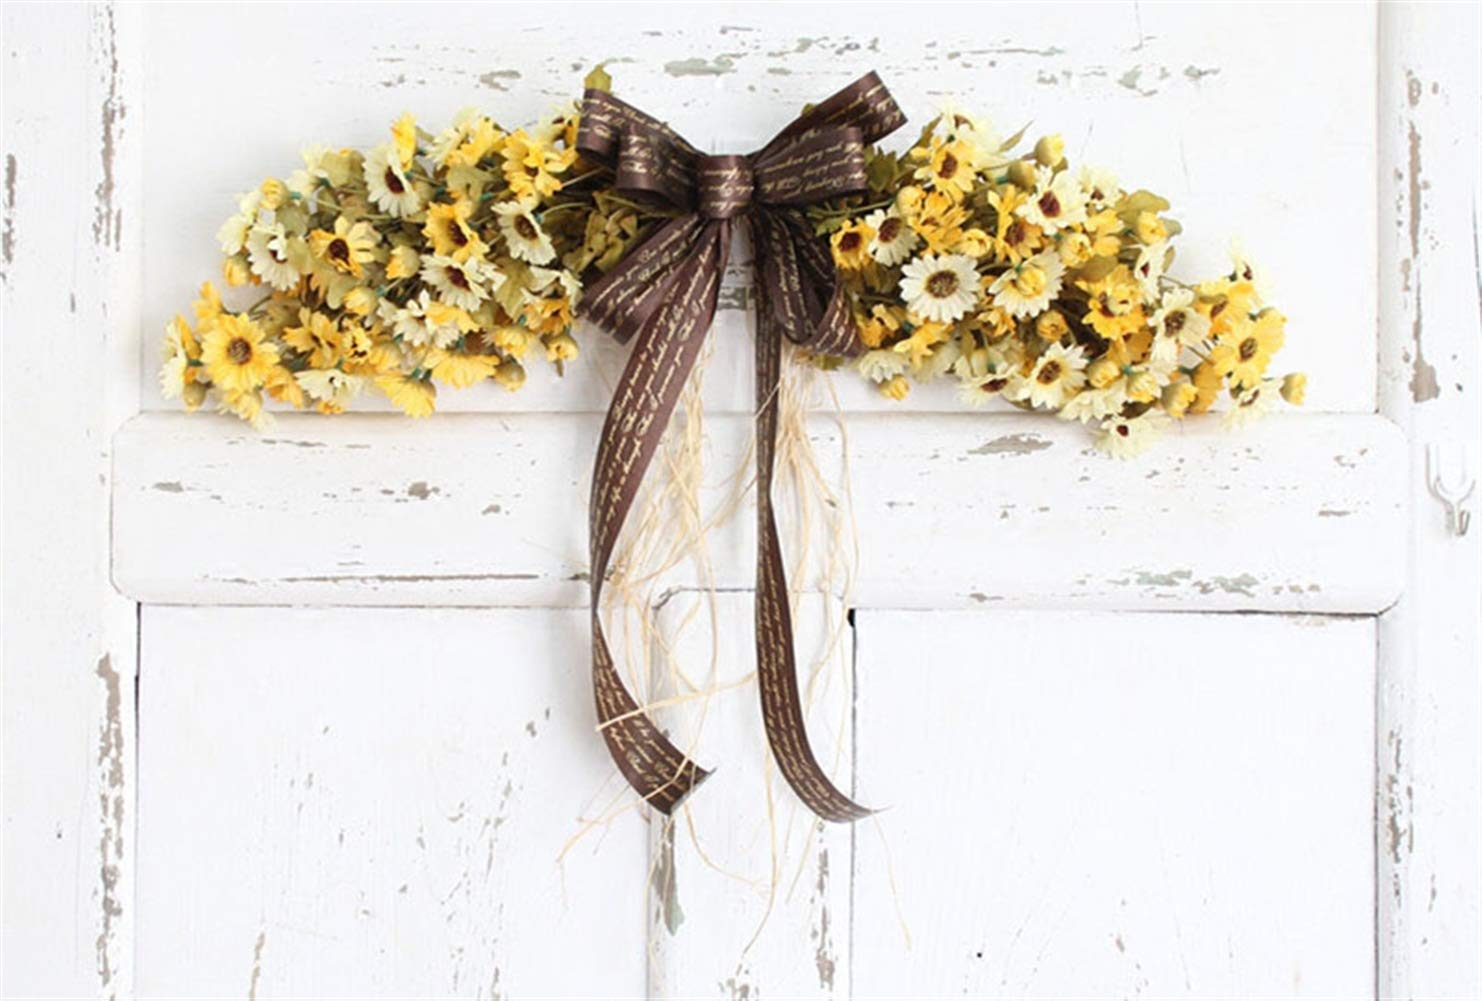 Liveinu Artificial Daisy Floral Swag for Front Door Flowers Arrangements Wedding Table Centerpieces Door Swag for Decor 21.8 x 4.9 Inch Yellow Swag Wreath